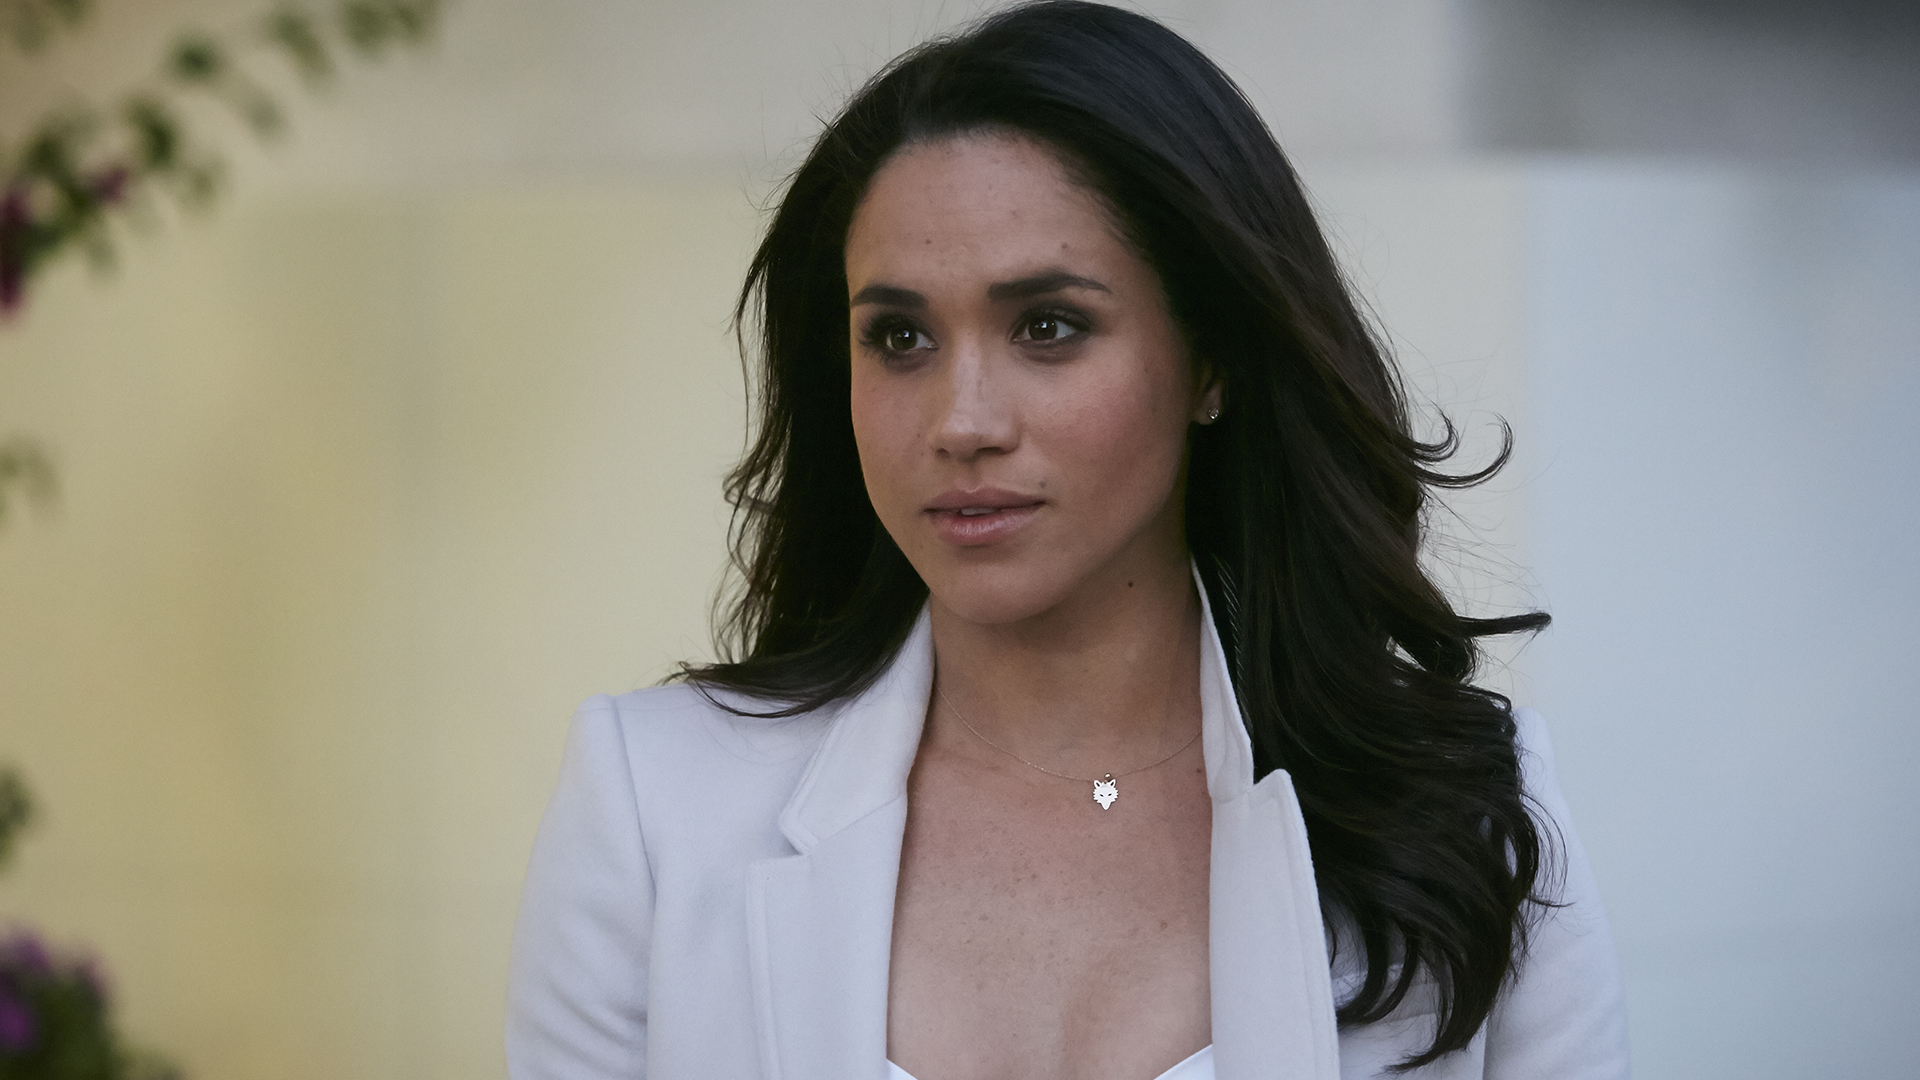 Meghan Markle, Prince Harry Divorce Rumors Duchess of Sussex could get Millions after Separation